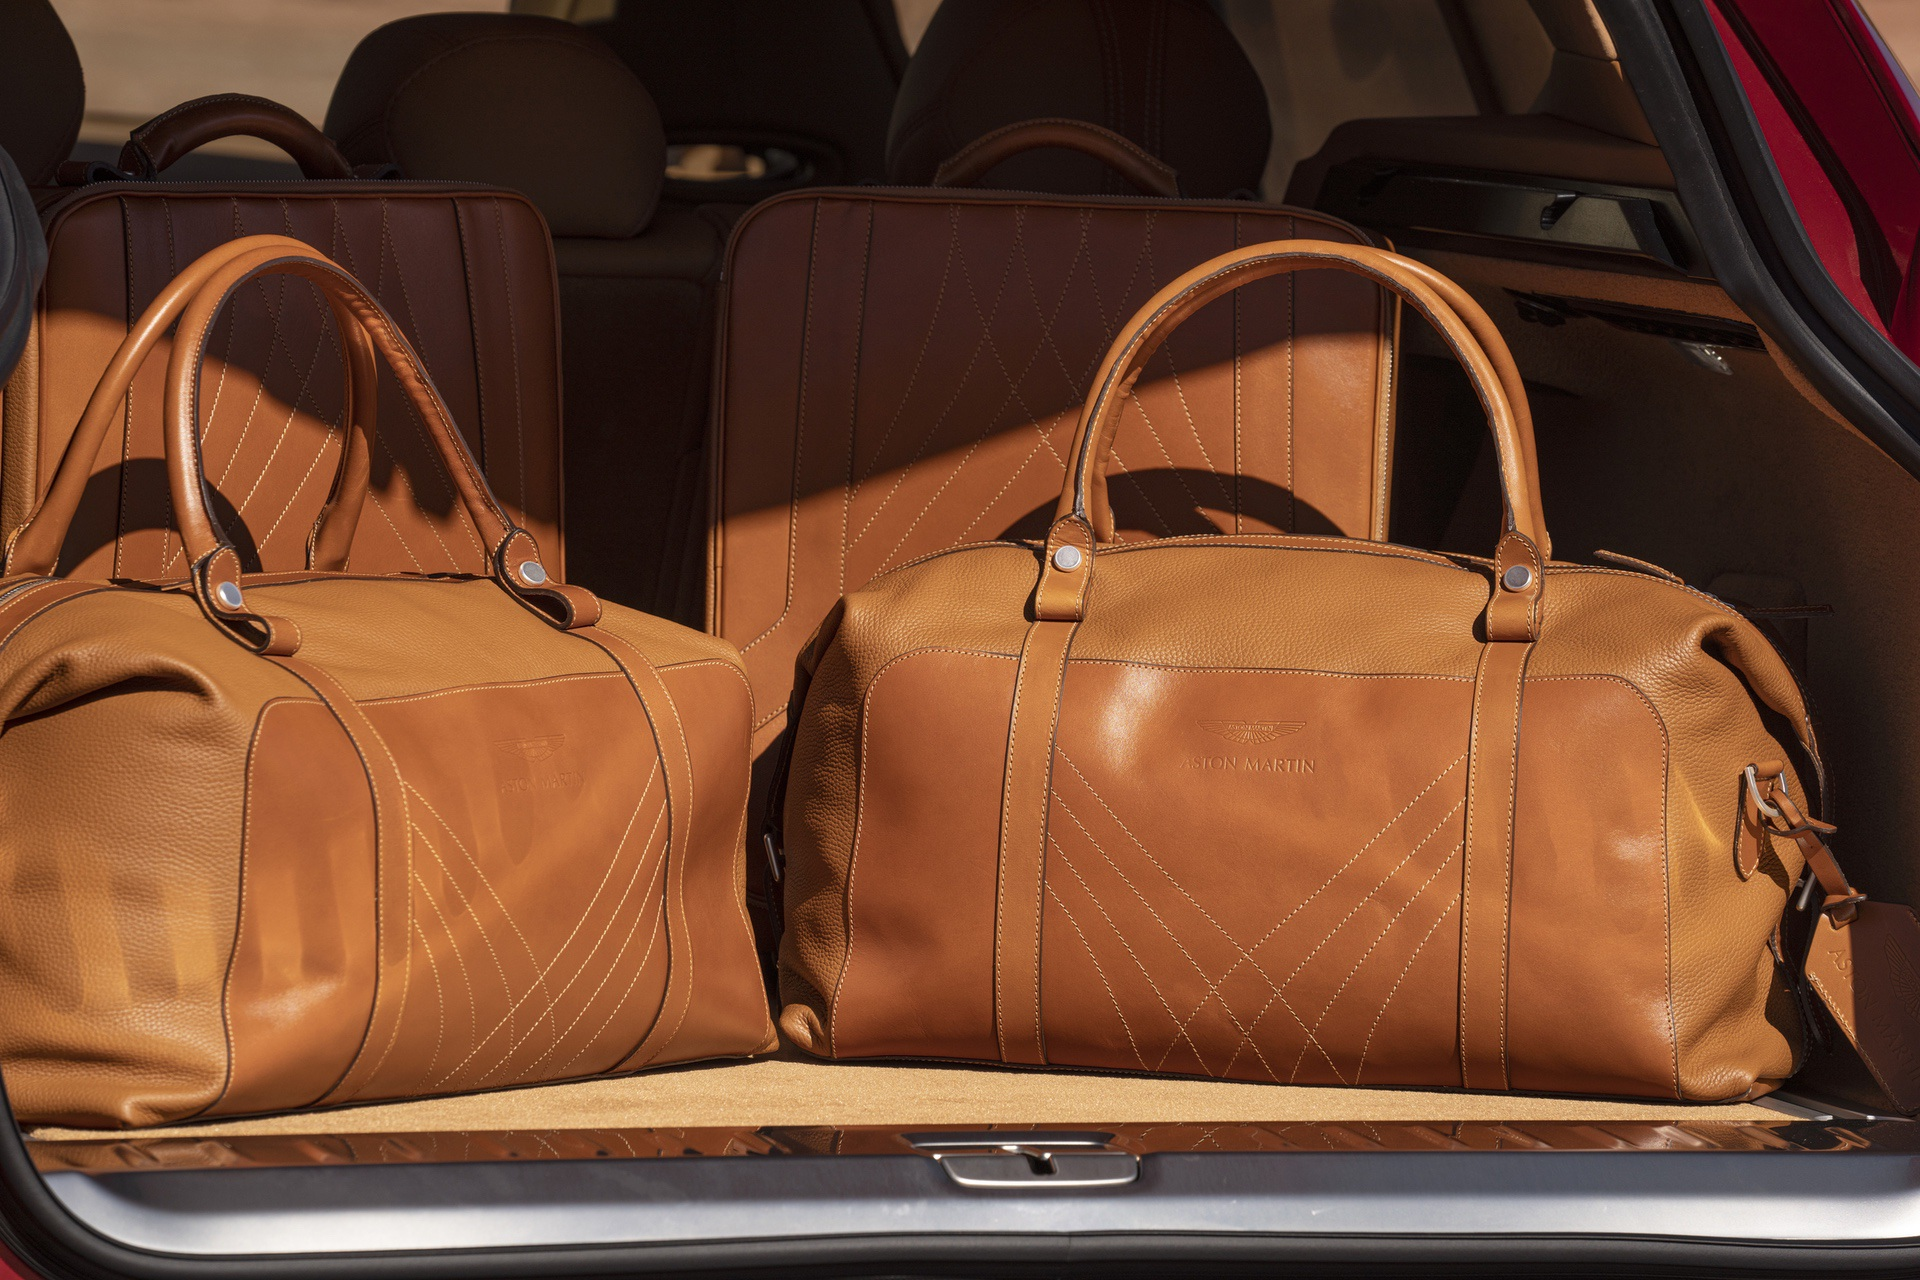 Aston-Martin-DBX-Luggage-Set